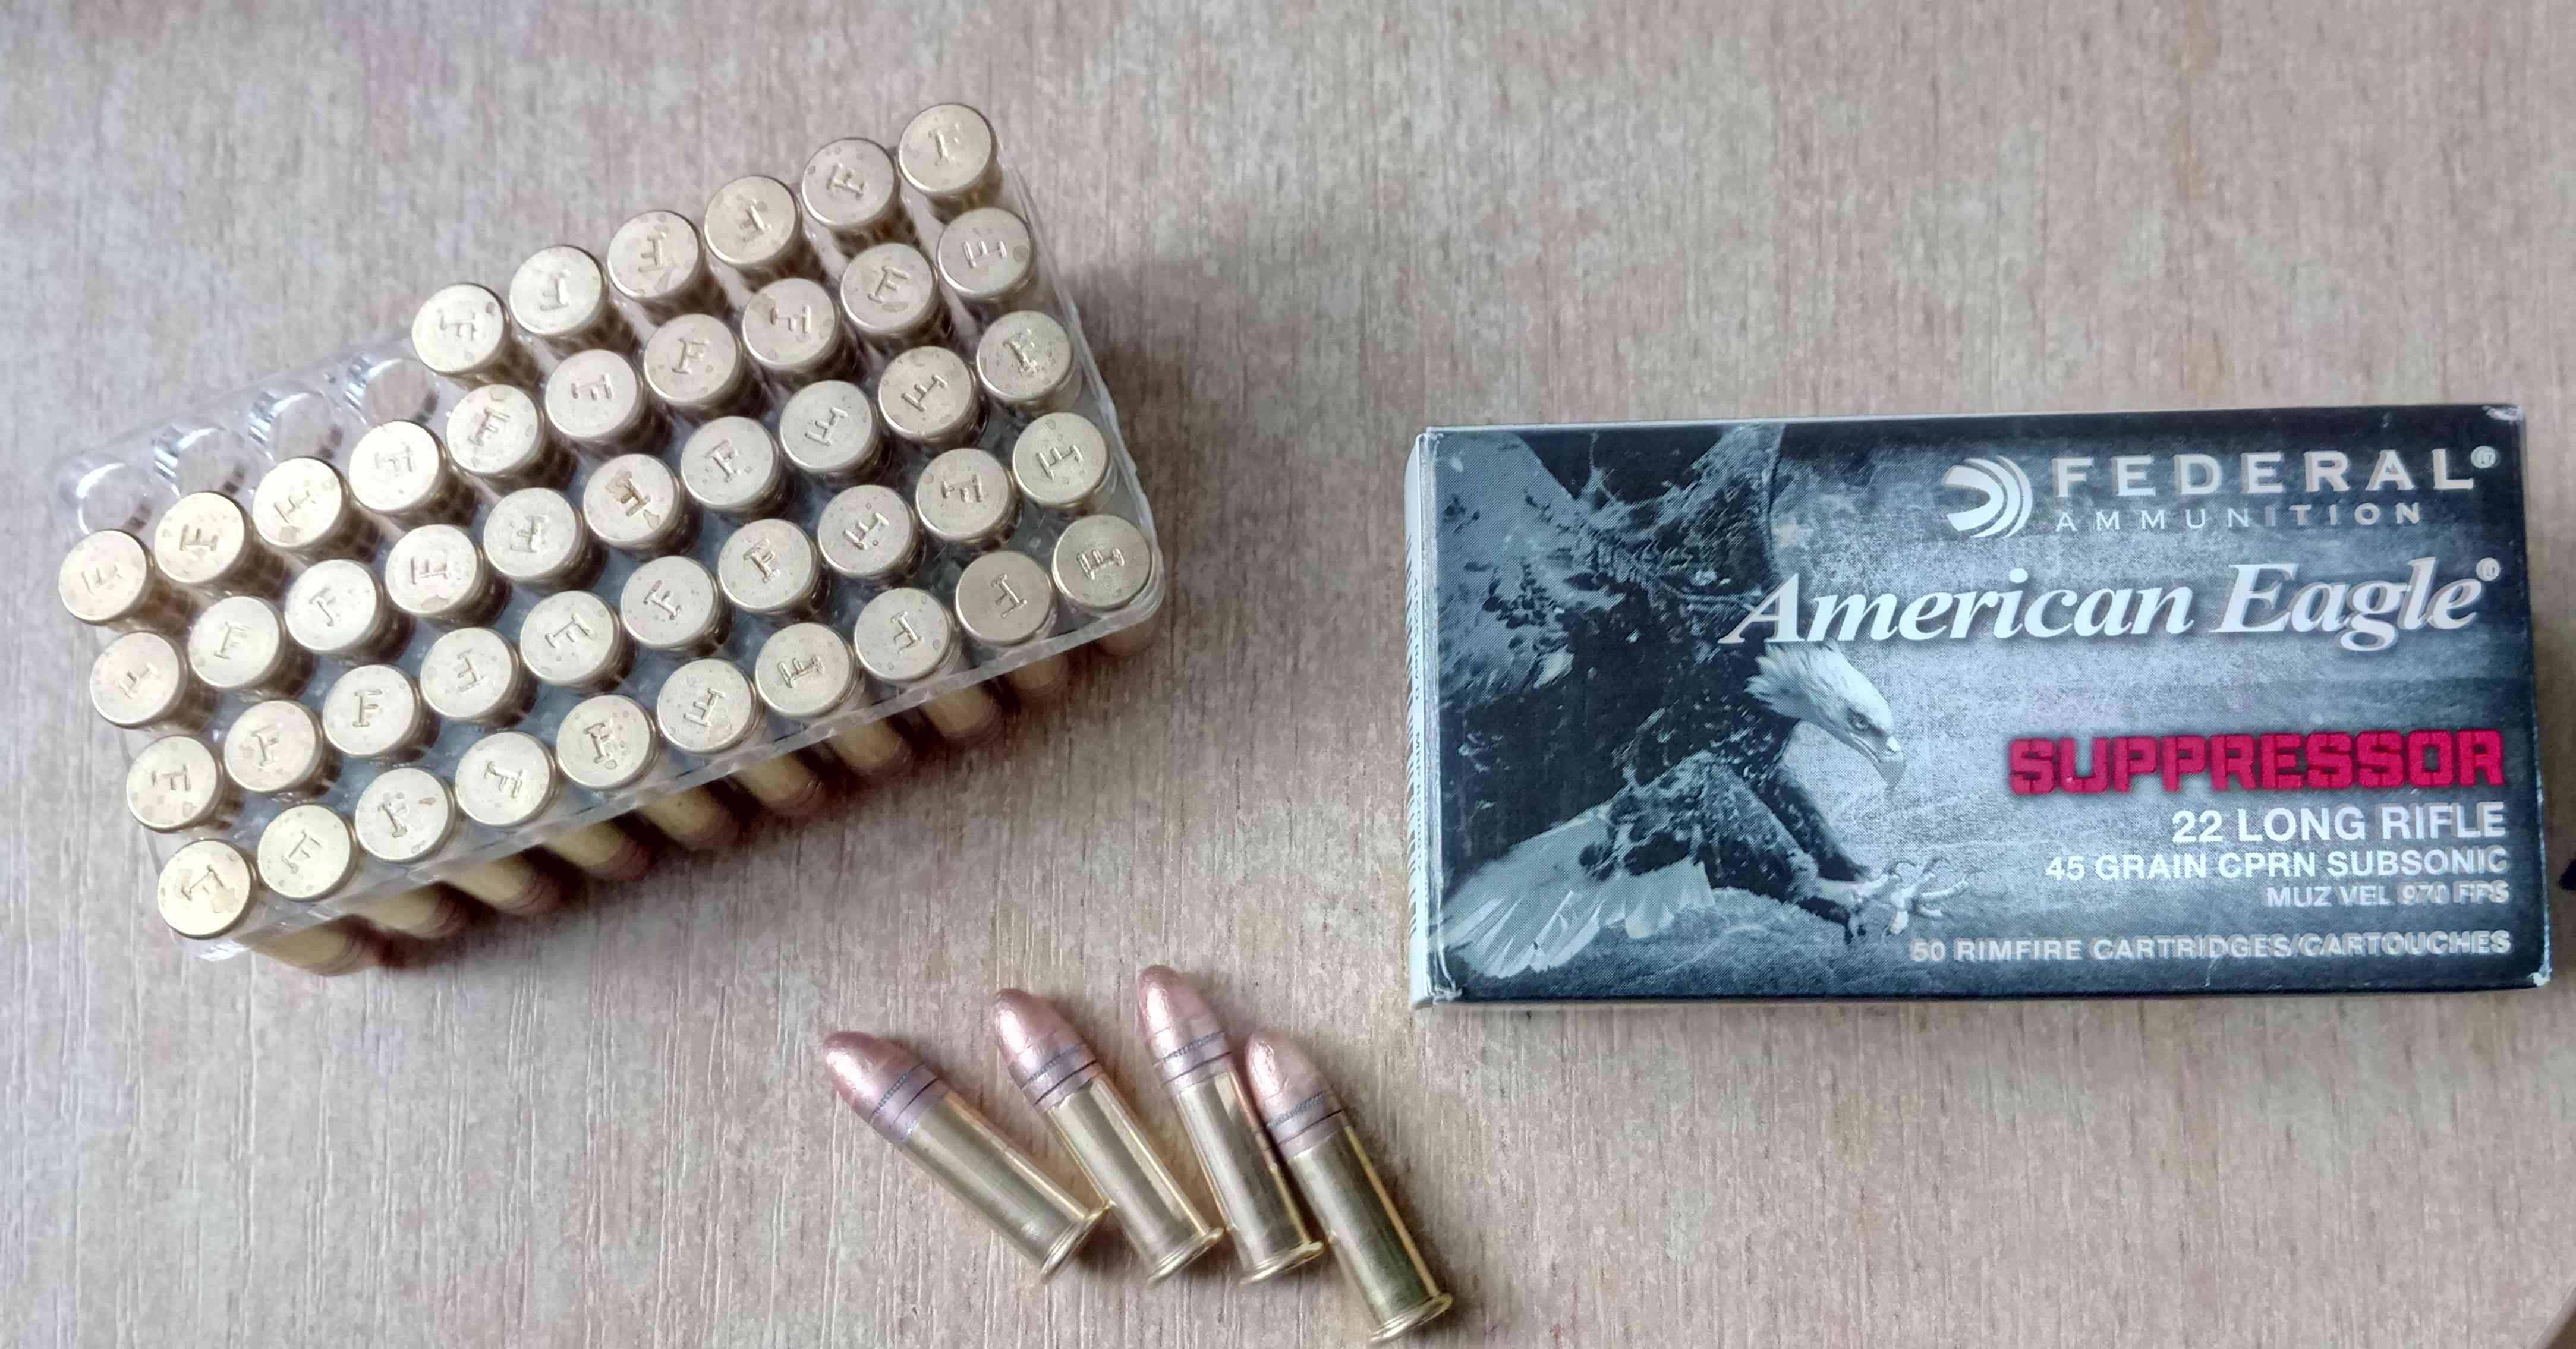 .22LR Federal AMERICAN EAGLE Suppressor 45gr